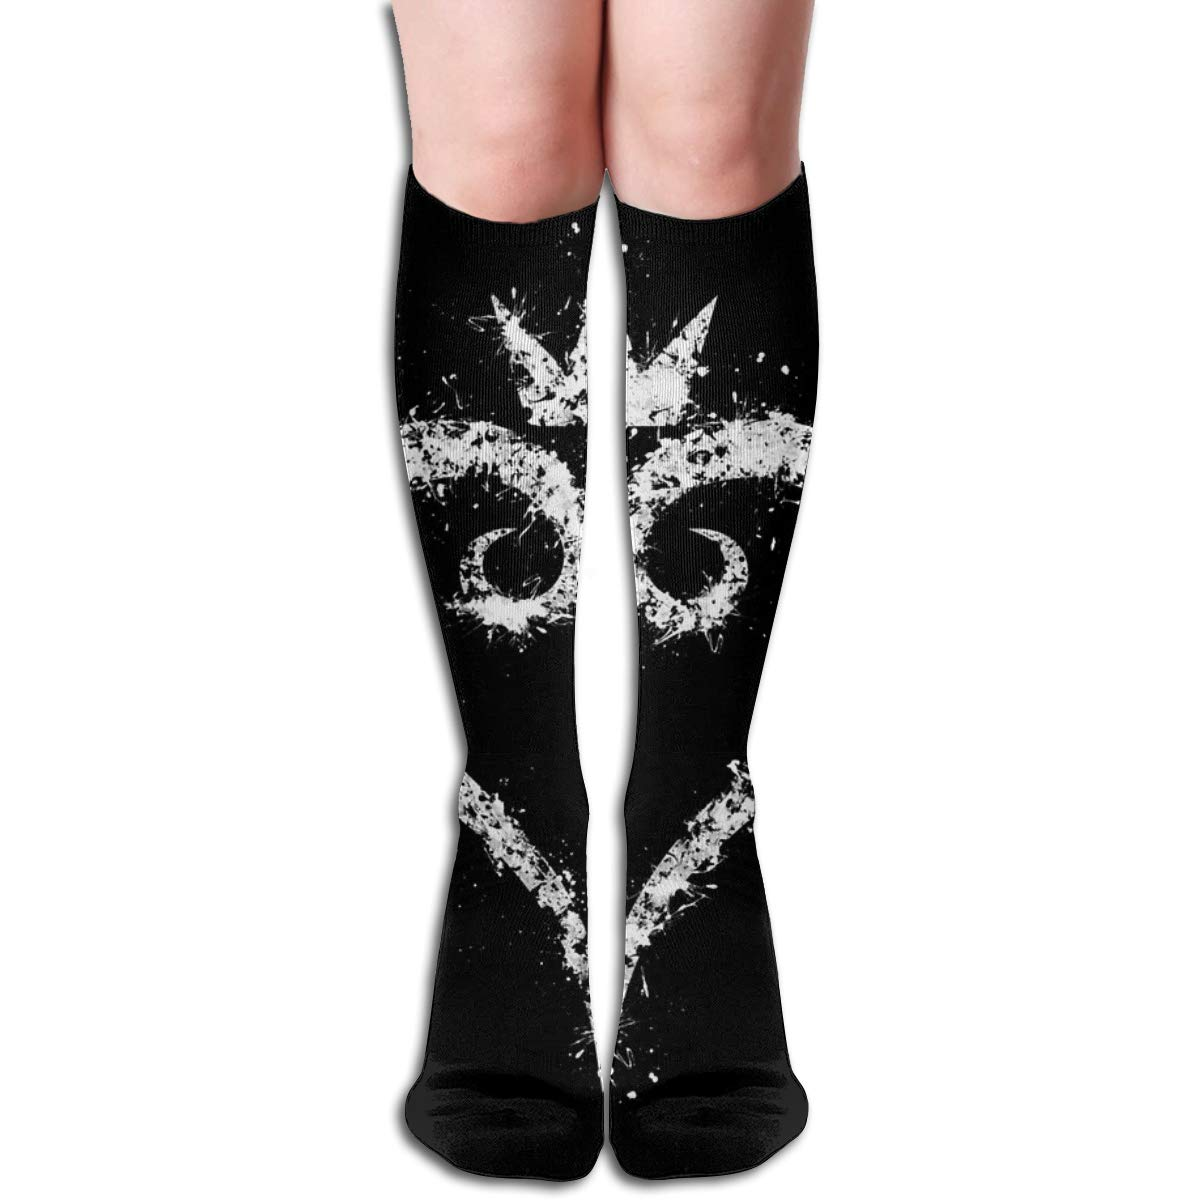 Kingdom Hearts Unisex Compression Socks Athletic Tube Stockings Sport Long Socks One Size